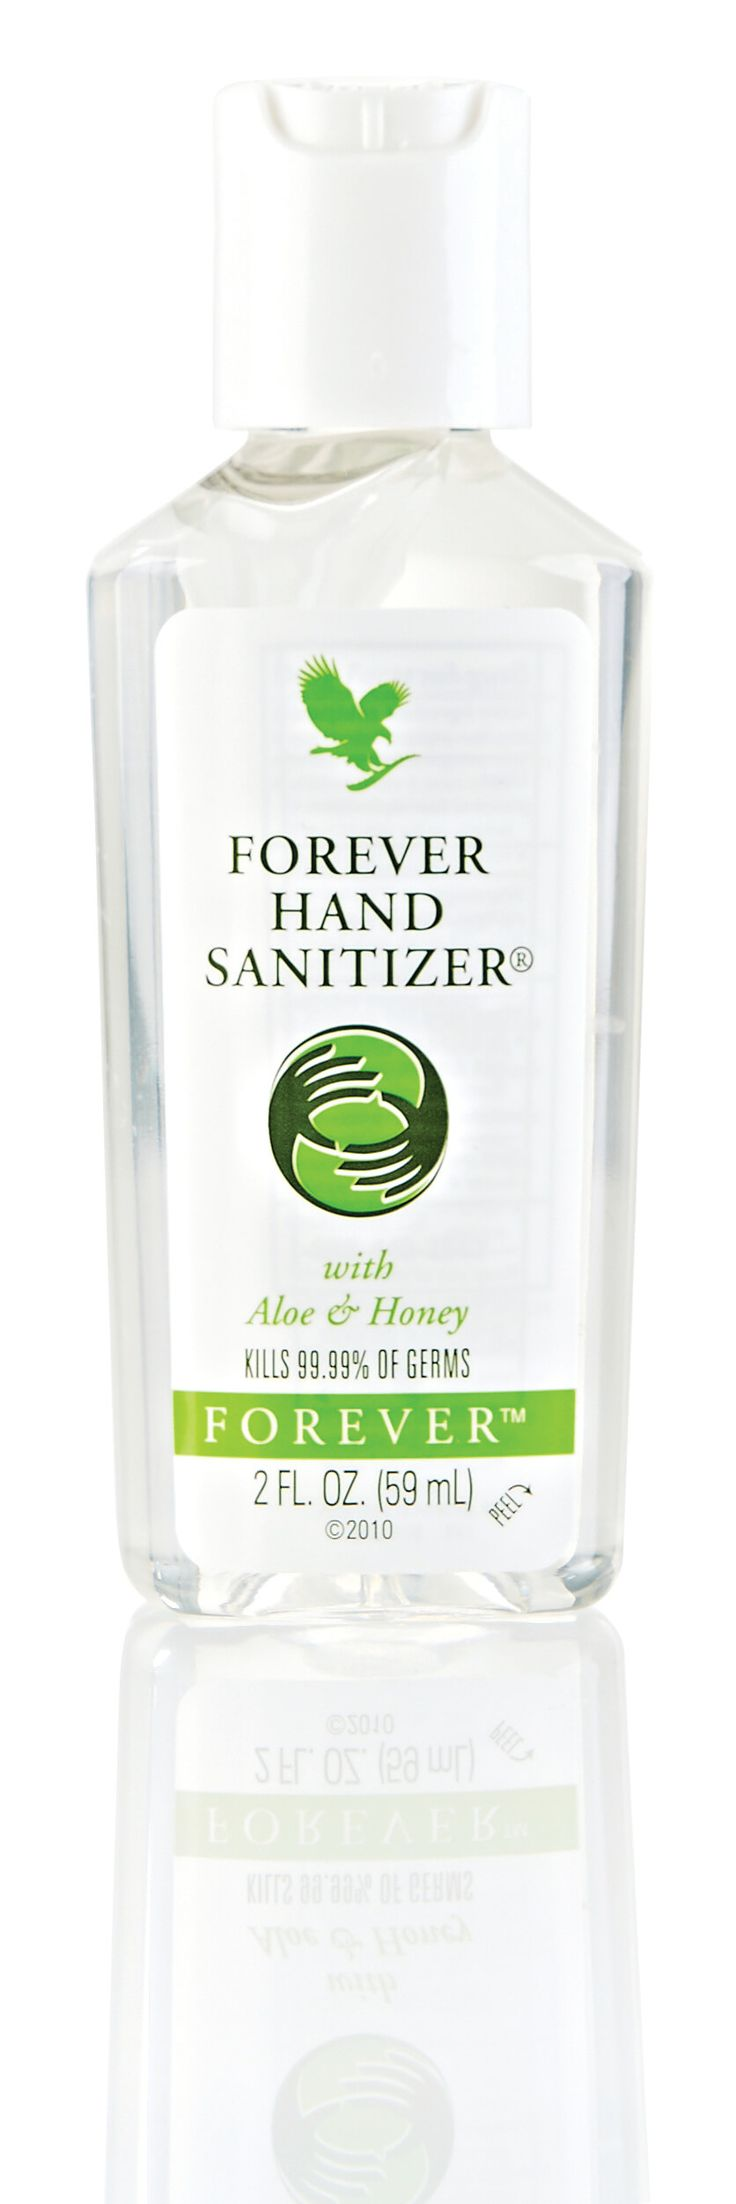 #ForeverLiving Hand Sanitizer – peace of mind in a tiny bottle. http://link.flp.social/UVrlFC